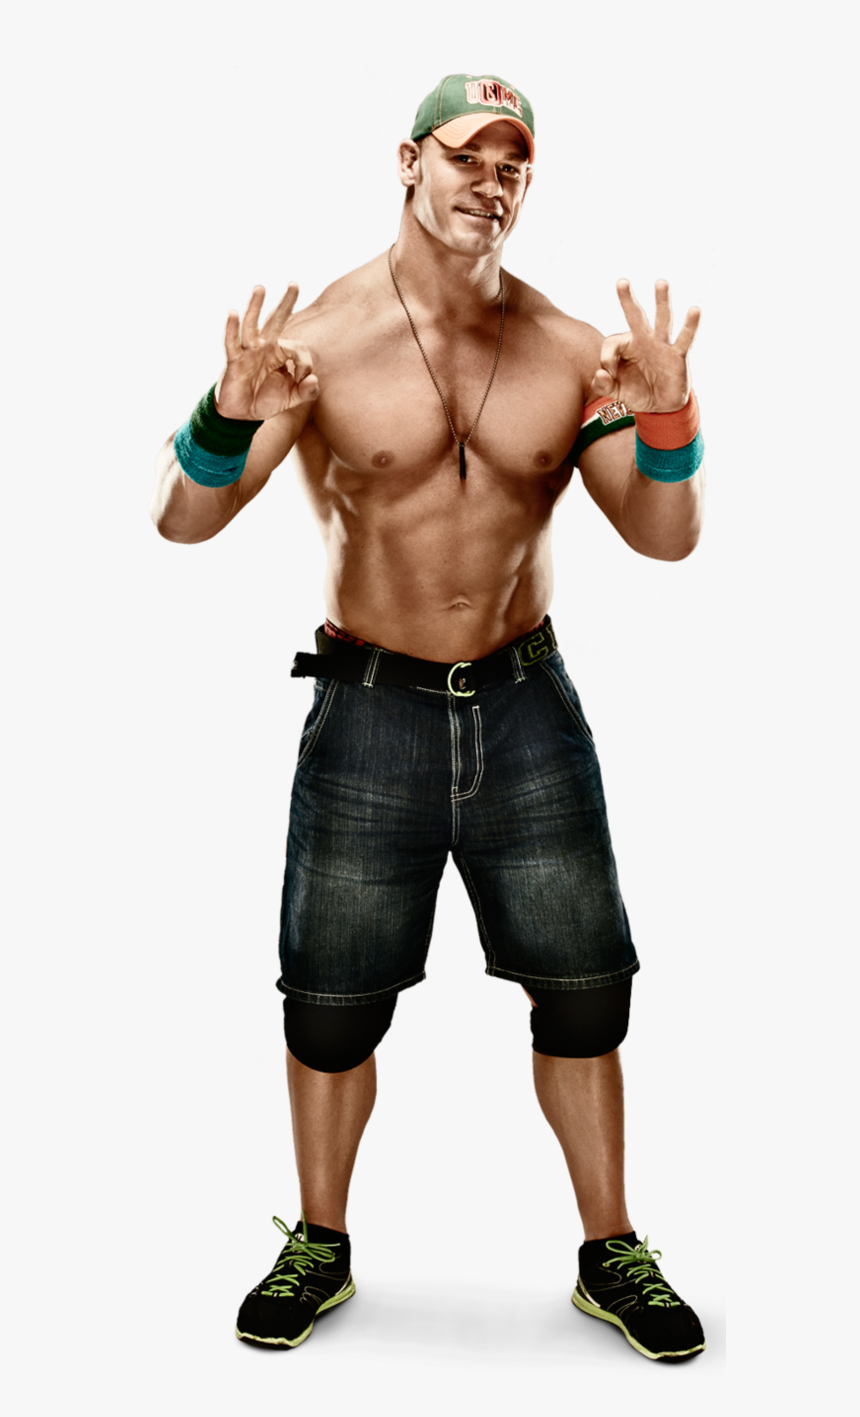 John Cena Png - Wwe World Champion John Cena, Transparent Png, Free Download